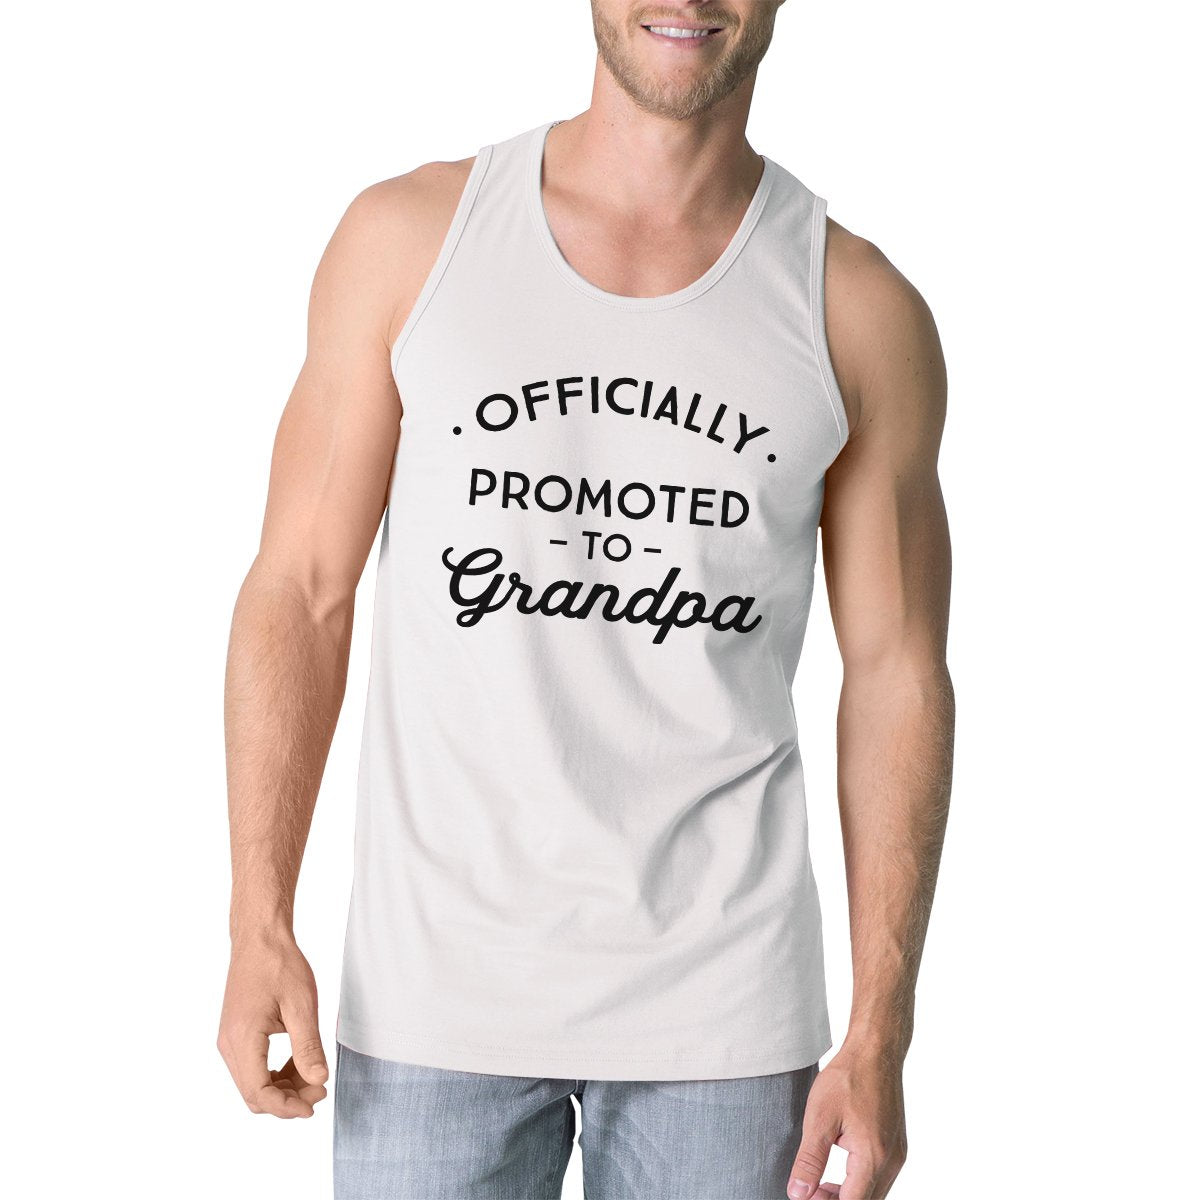 Officially Promoted To Grandpa Mens White Tank Top